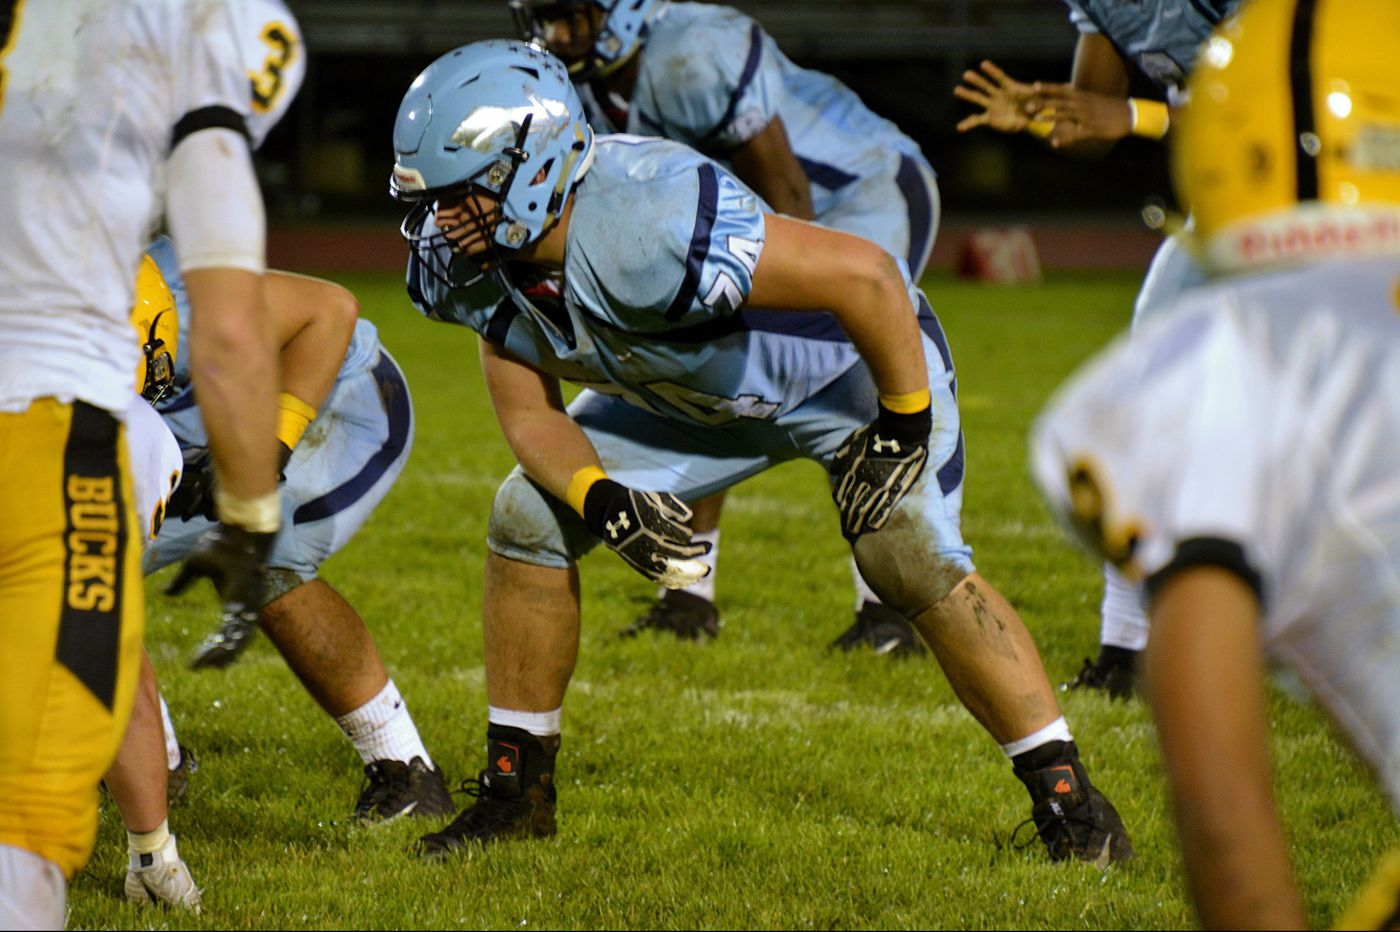 Jake Walton, unbeaten North Penn set for rematch against improved Neshaminy